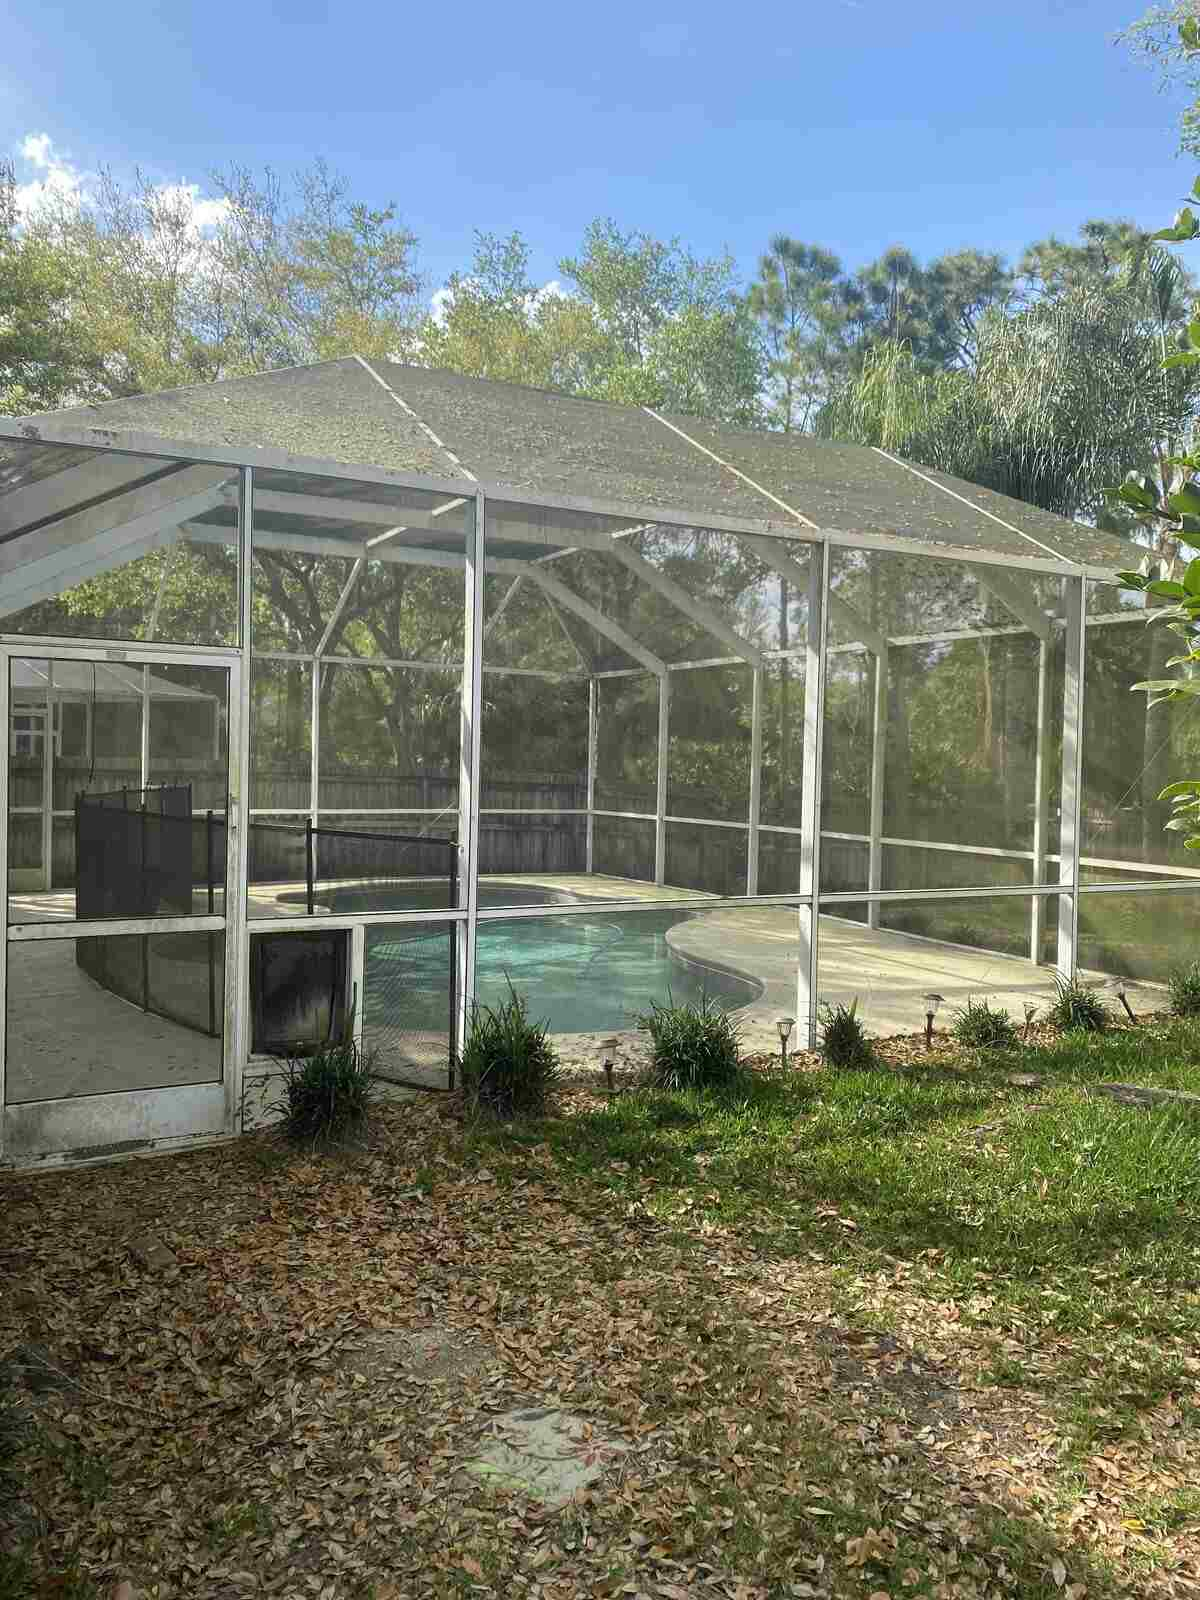 Pool cage